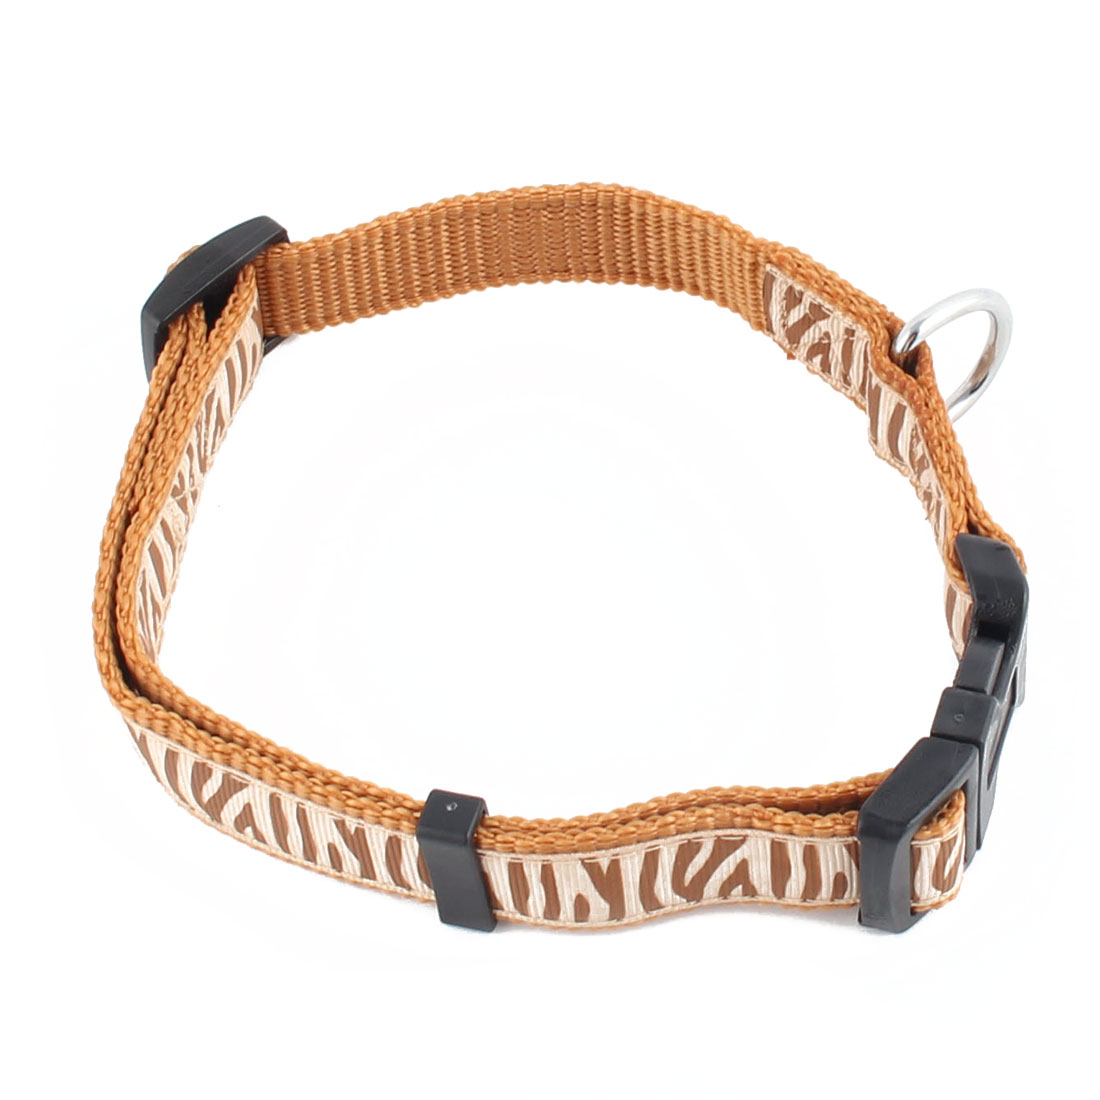 Pet Dog Nylon Zebra-stripe Pattern Adjustable Buckle Strap Belt Neck Collar Brown